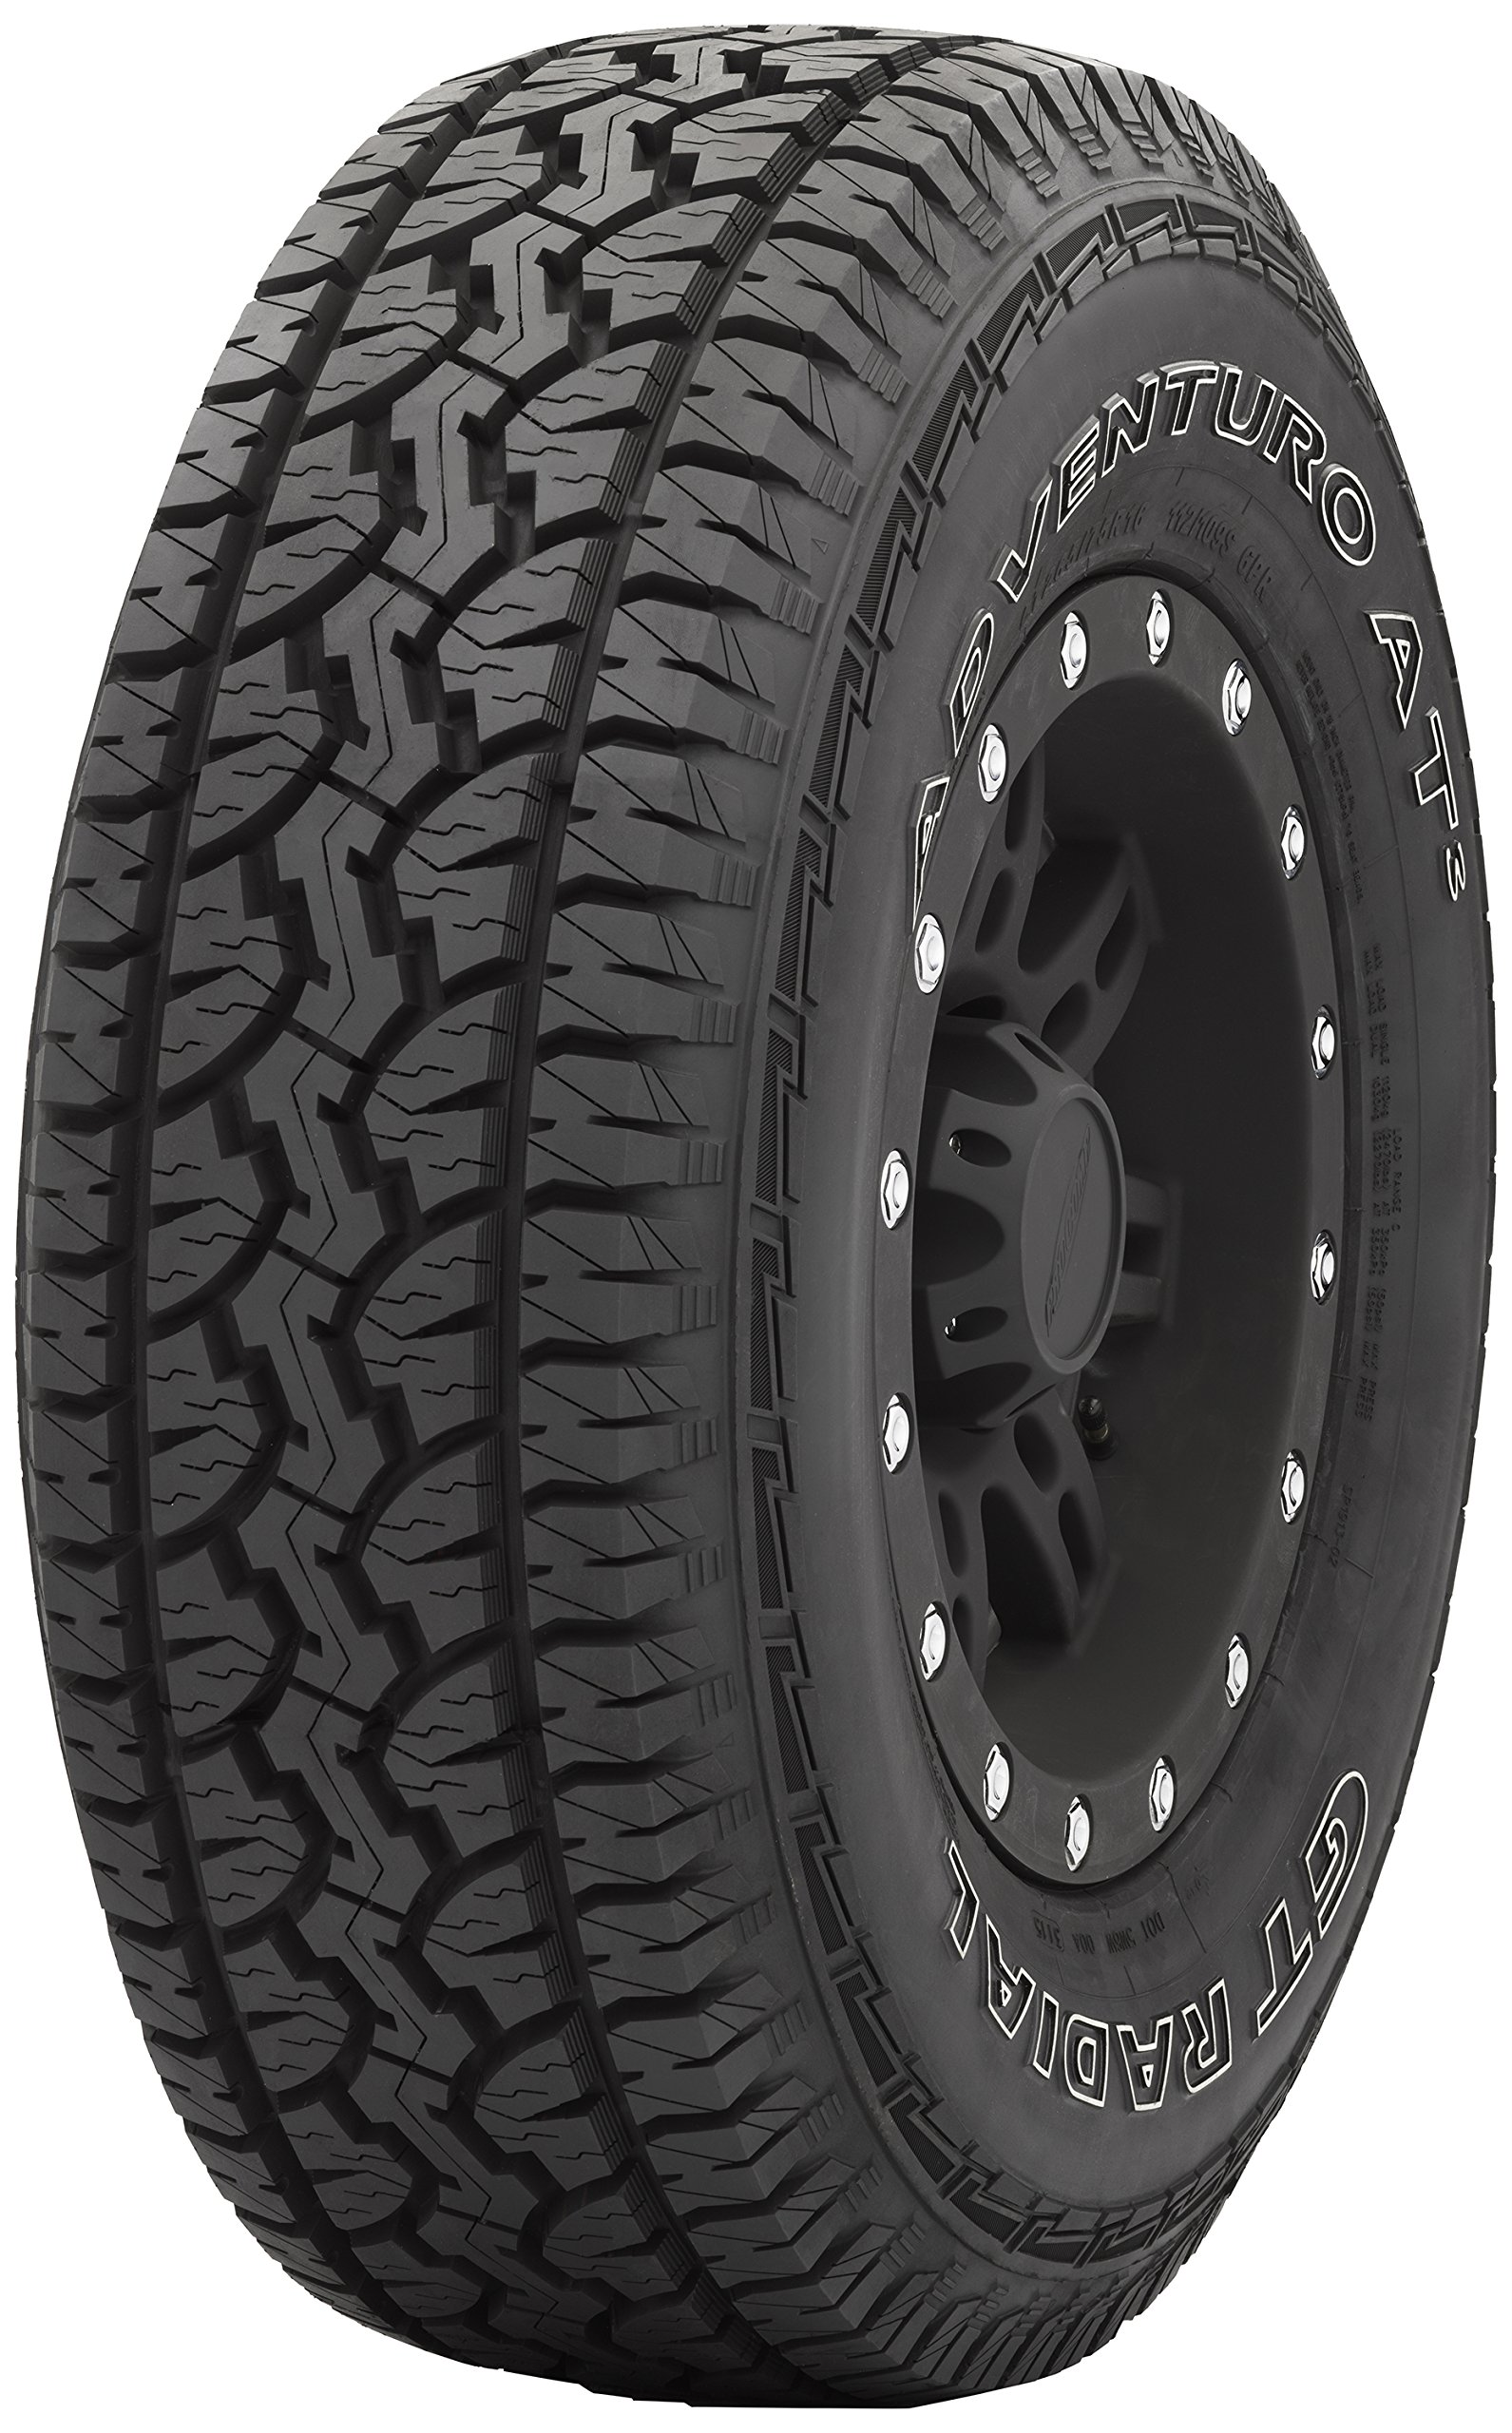 GT Radial ADVENTURO AT3 OWL All-Terrain Radial Tire - P265/70R17 113T